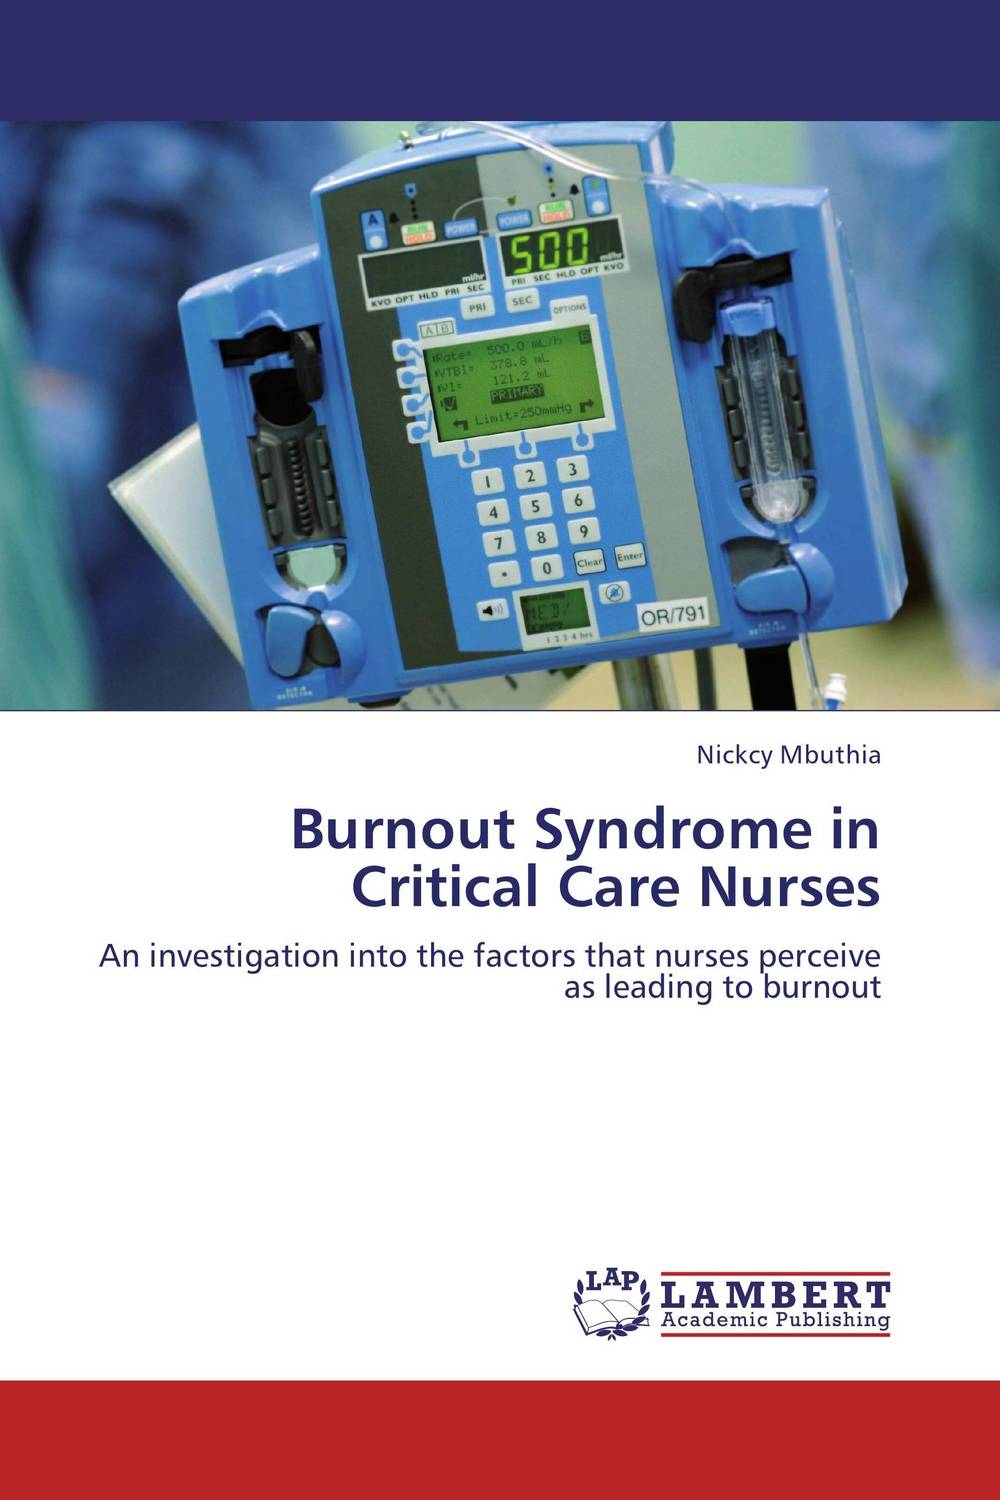 Burnout Syndrome in Critical Care Nurses